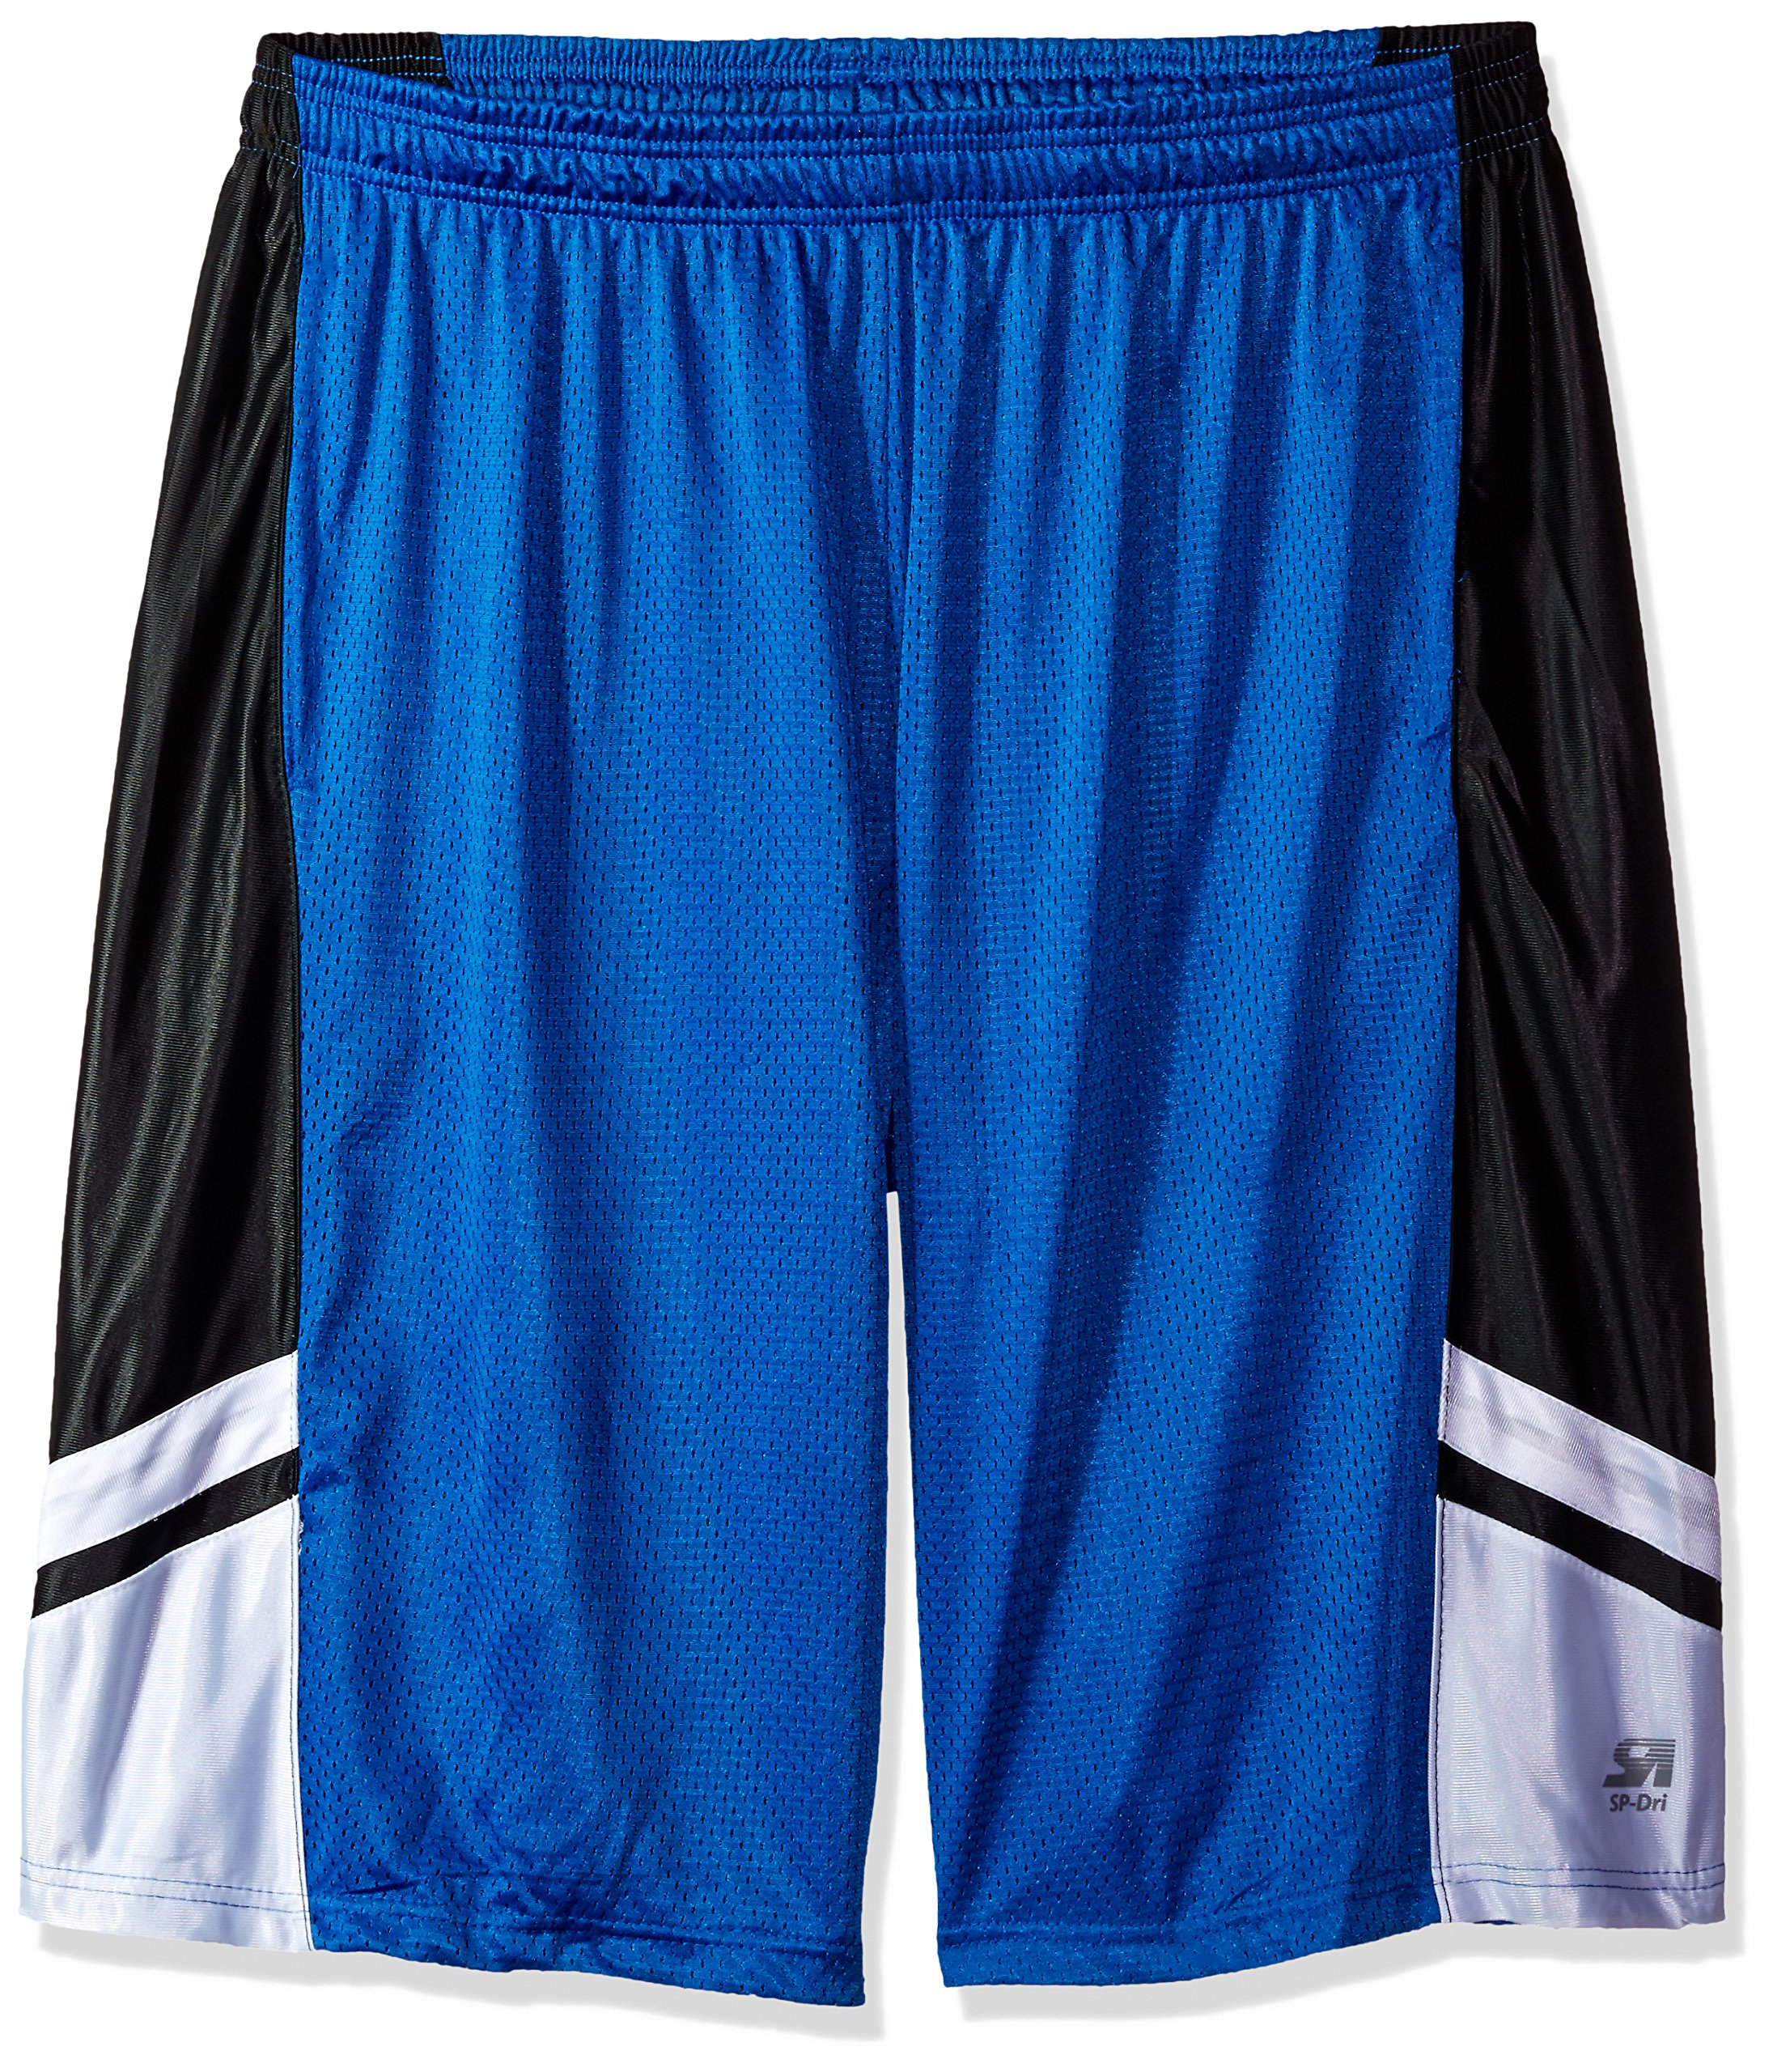 Southpole Men's Big and Tall Basic Basketball Mesh Shorts, Royal, 5XB